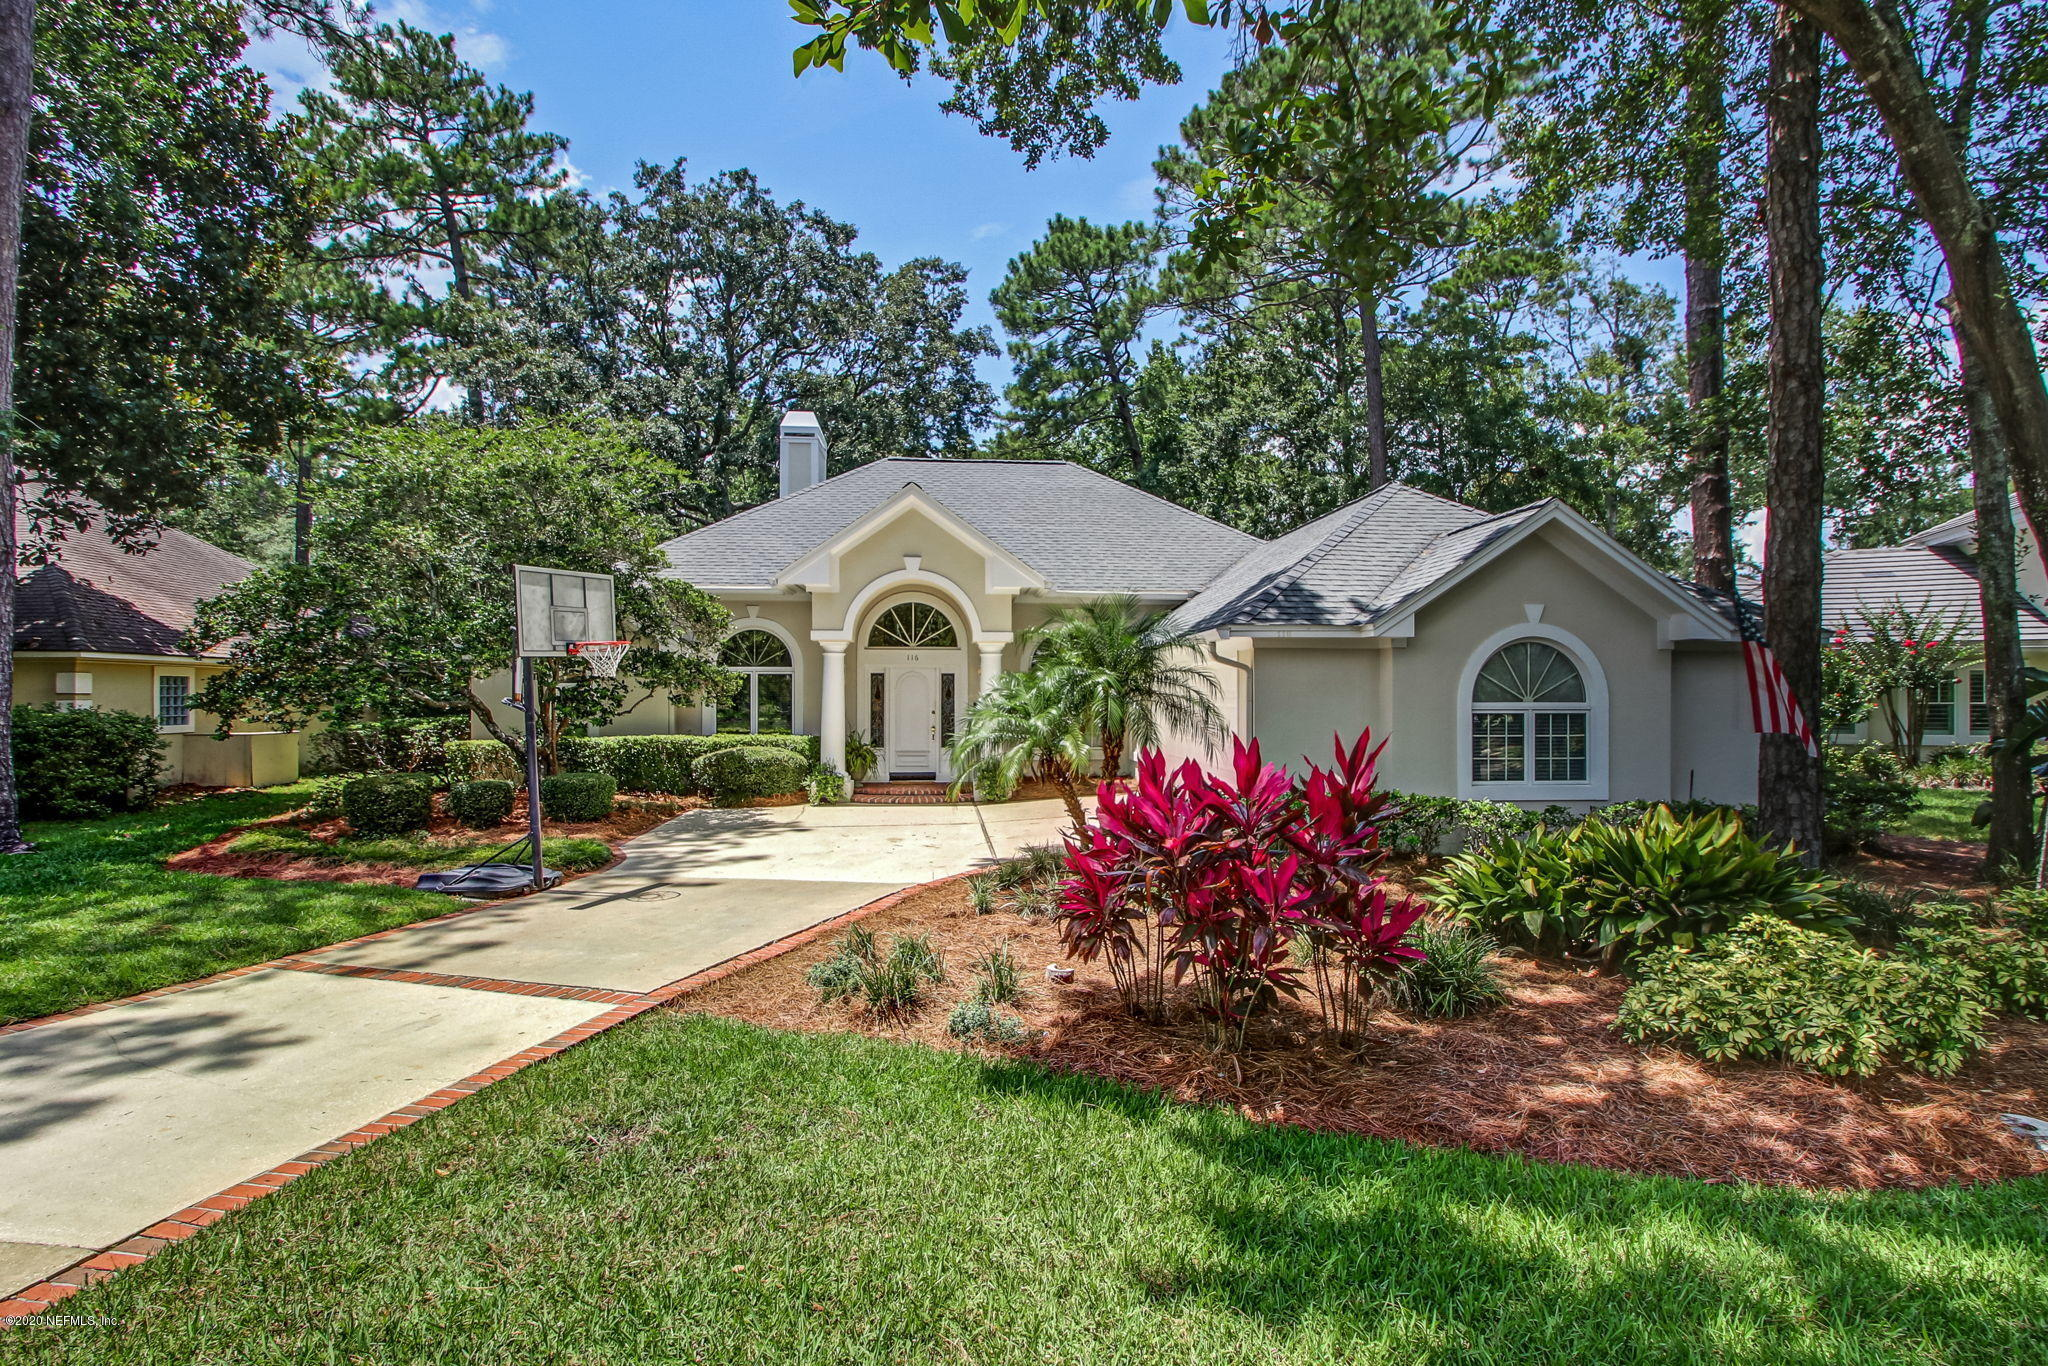 116 CYPRESS LAGOON, PONTE VEDRA BEACH, FLORIDA 32082, 4 Bedrooms Bedrooms, ,3 BathroomsBathrooms,Residential,For sale,CYPRESS LAGOON,1061677